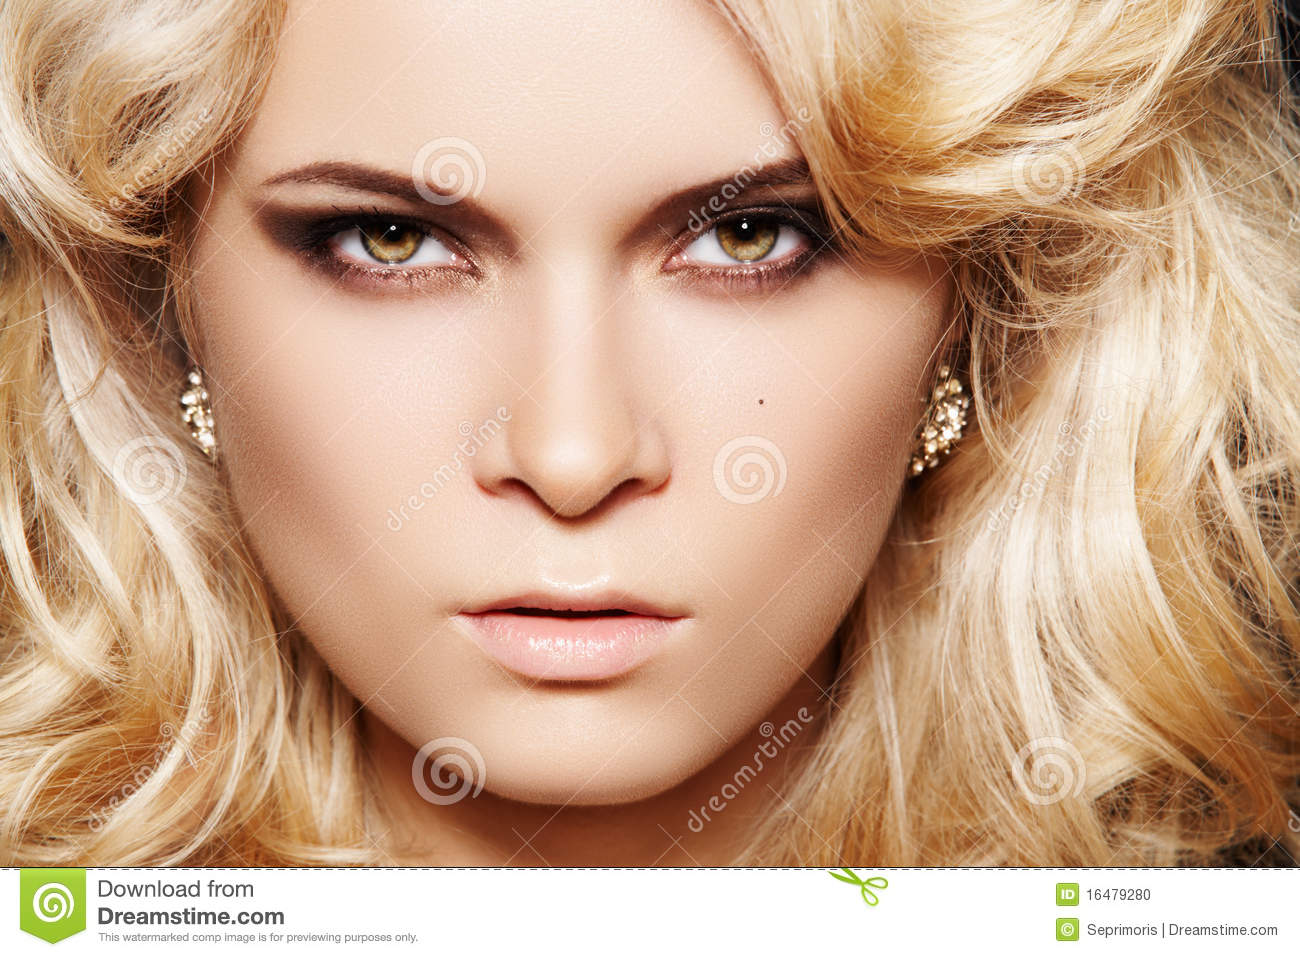 Glamour woman with make-up & chic shiny jewellery